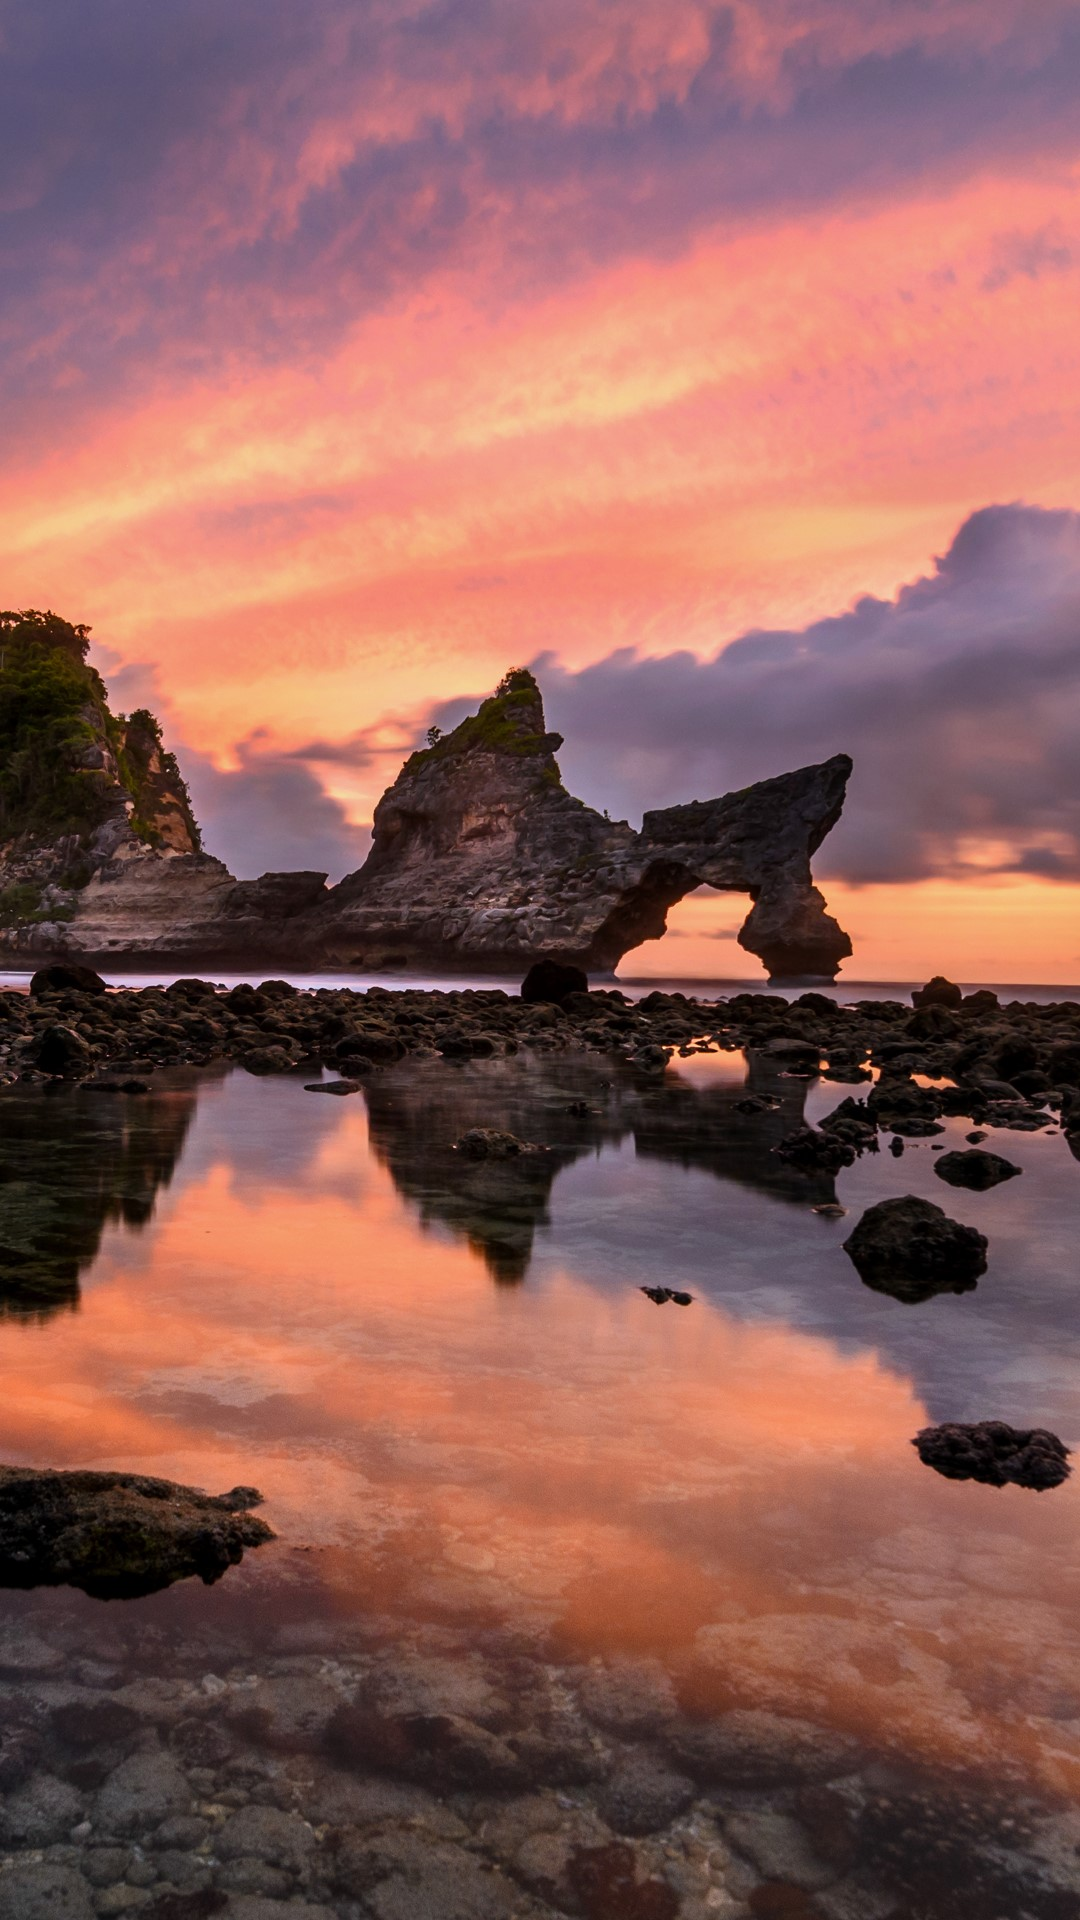 Dragon rocks at Atuh beach, Nusa Penida island, Bali ...